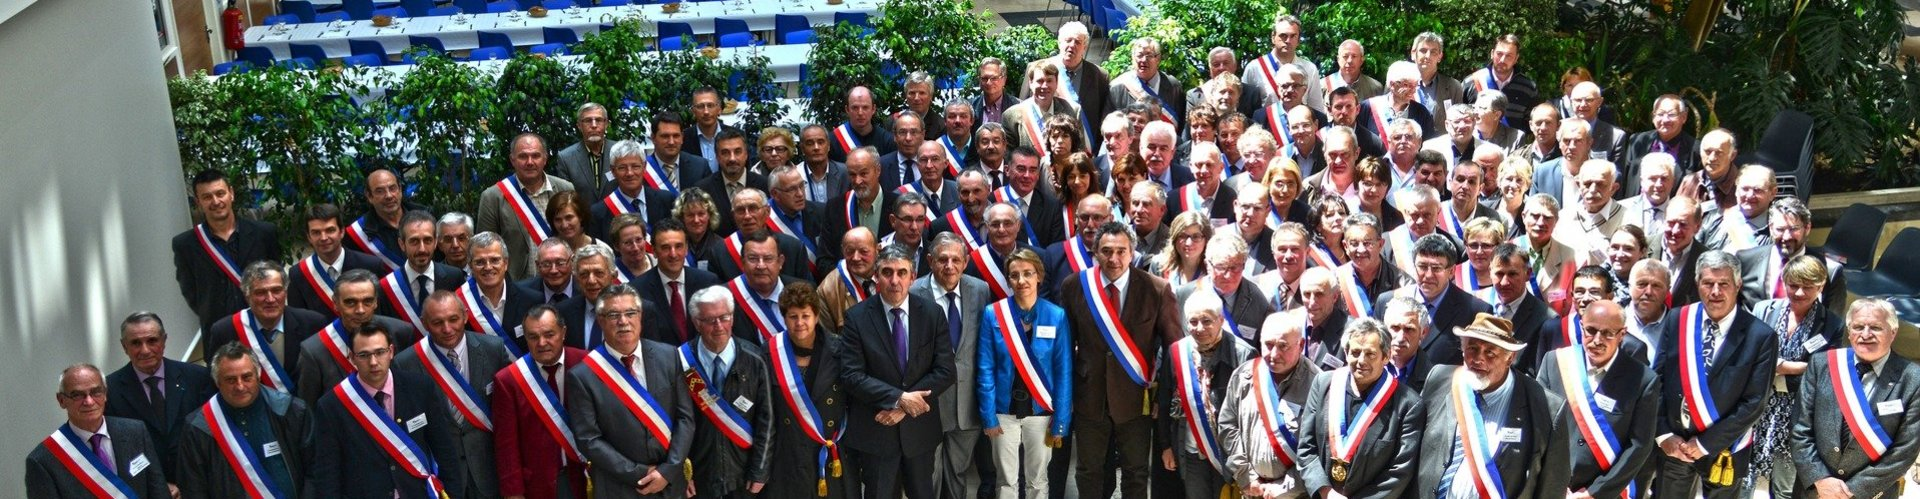 Coopération Intercommunale Réforme Municipal Cantal